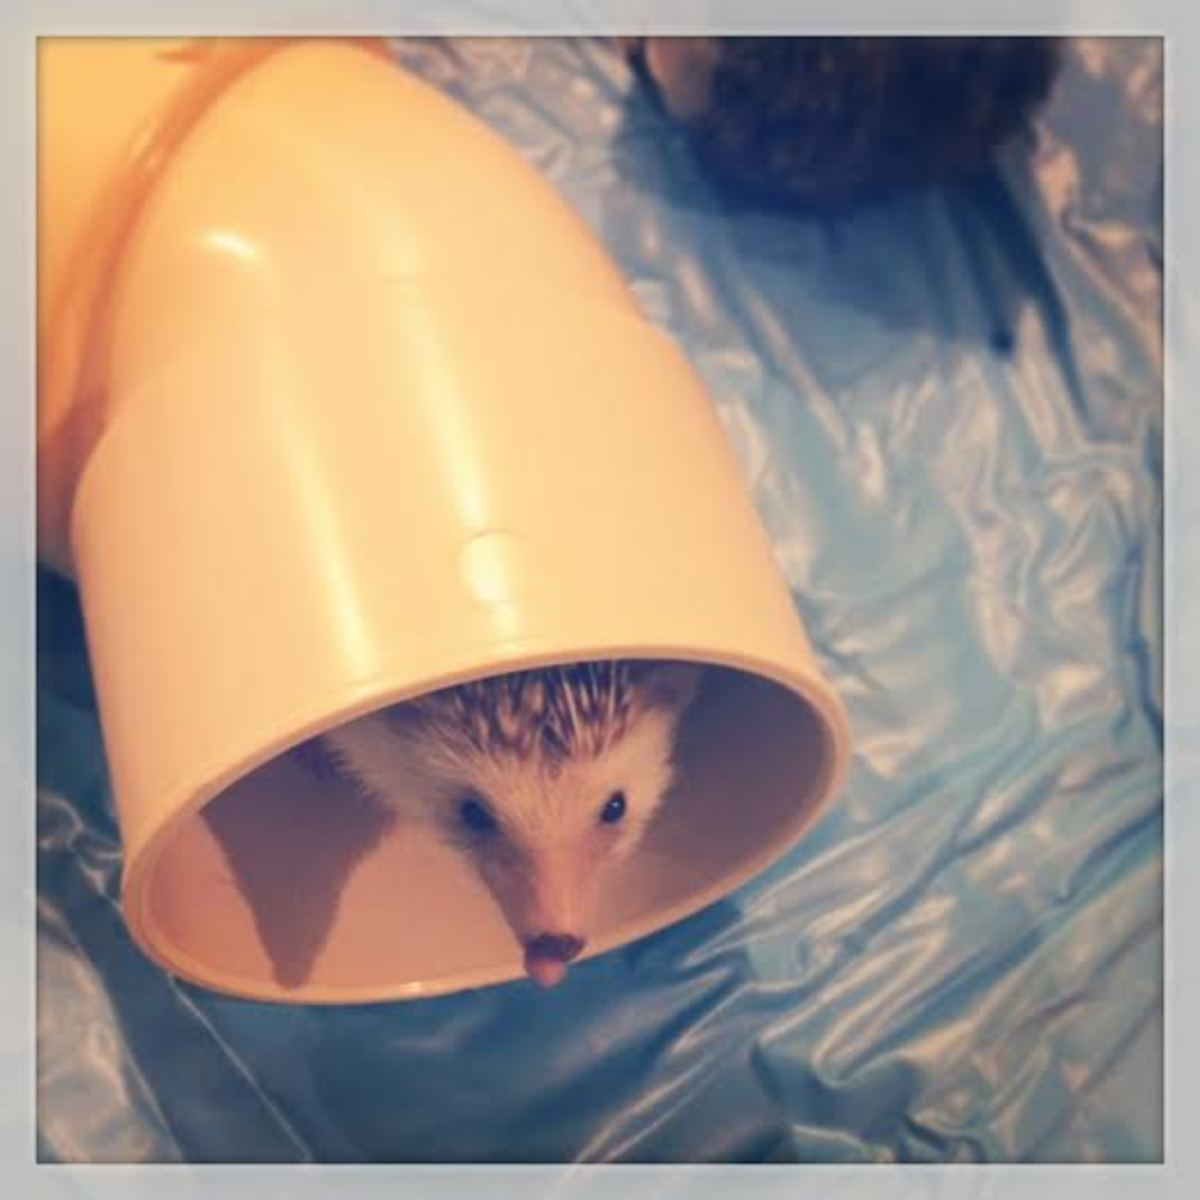 Rocher Hage poking his head out of his plumbing tube